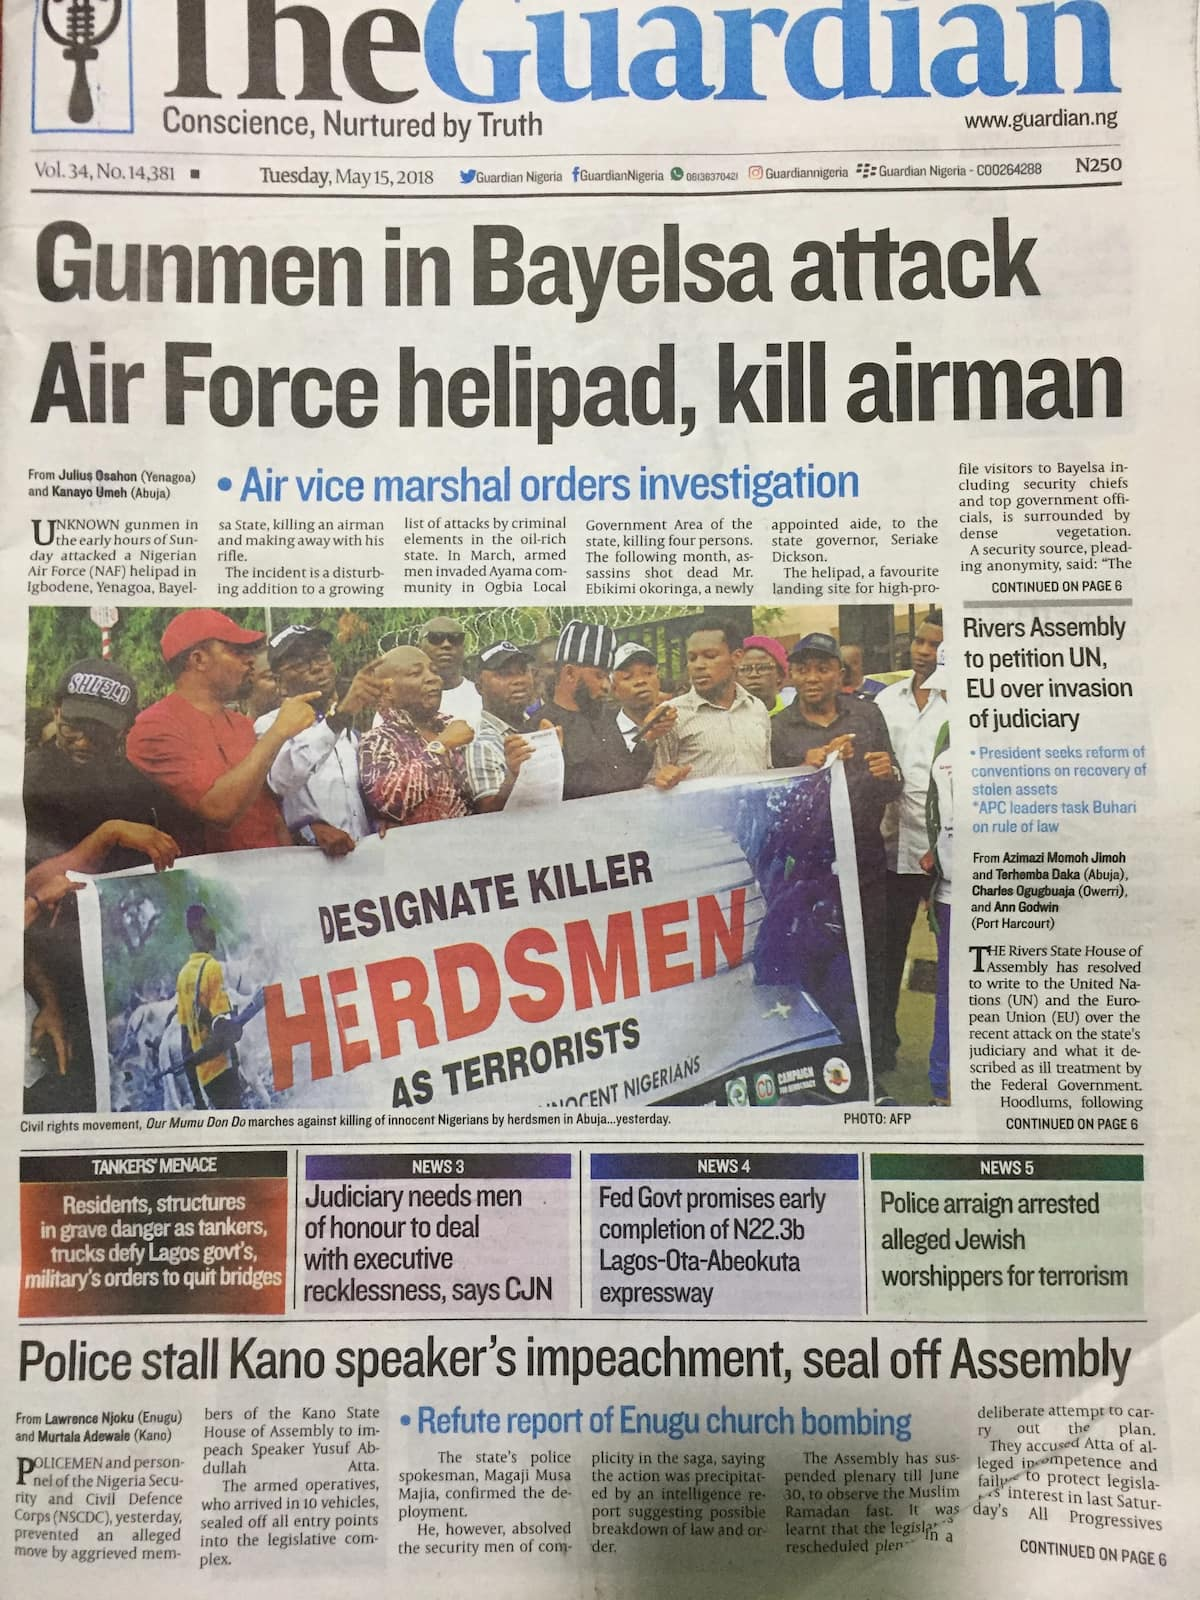 Gunmen in Bayelsa attack Air Force helipad, kill airman